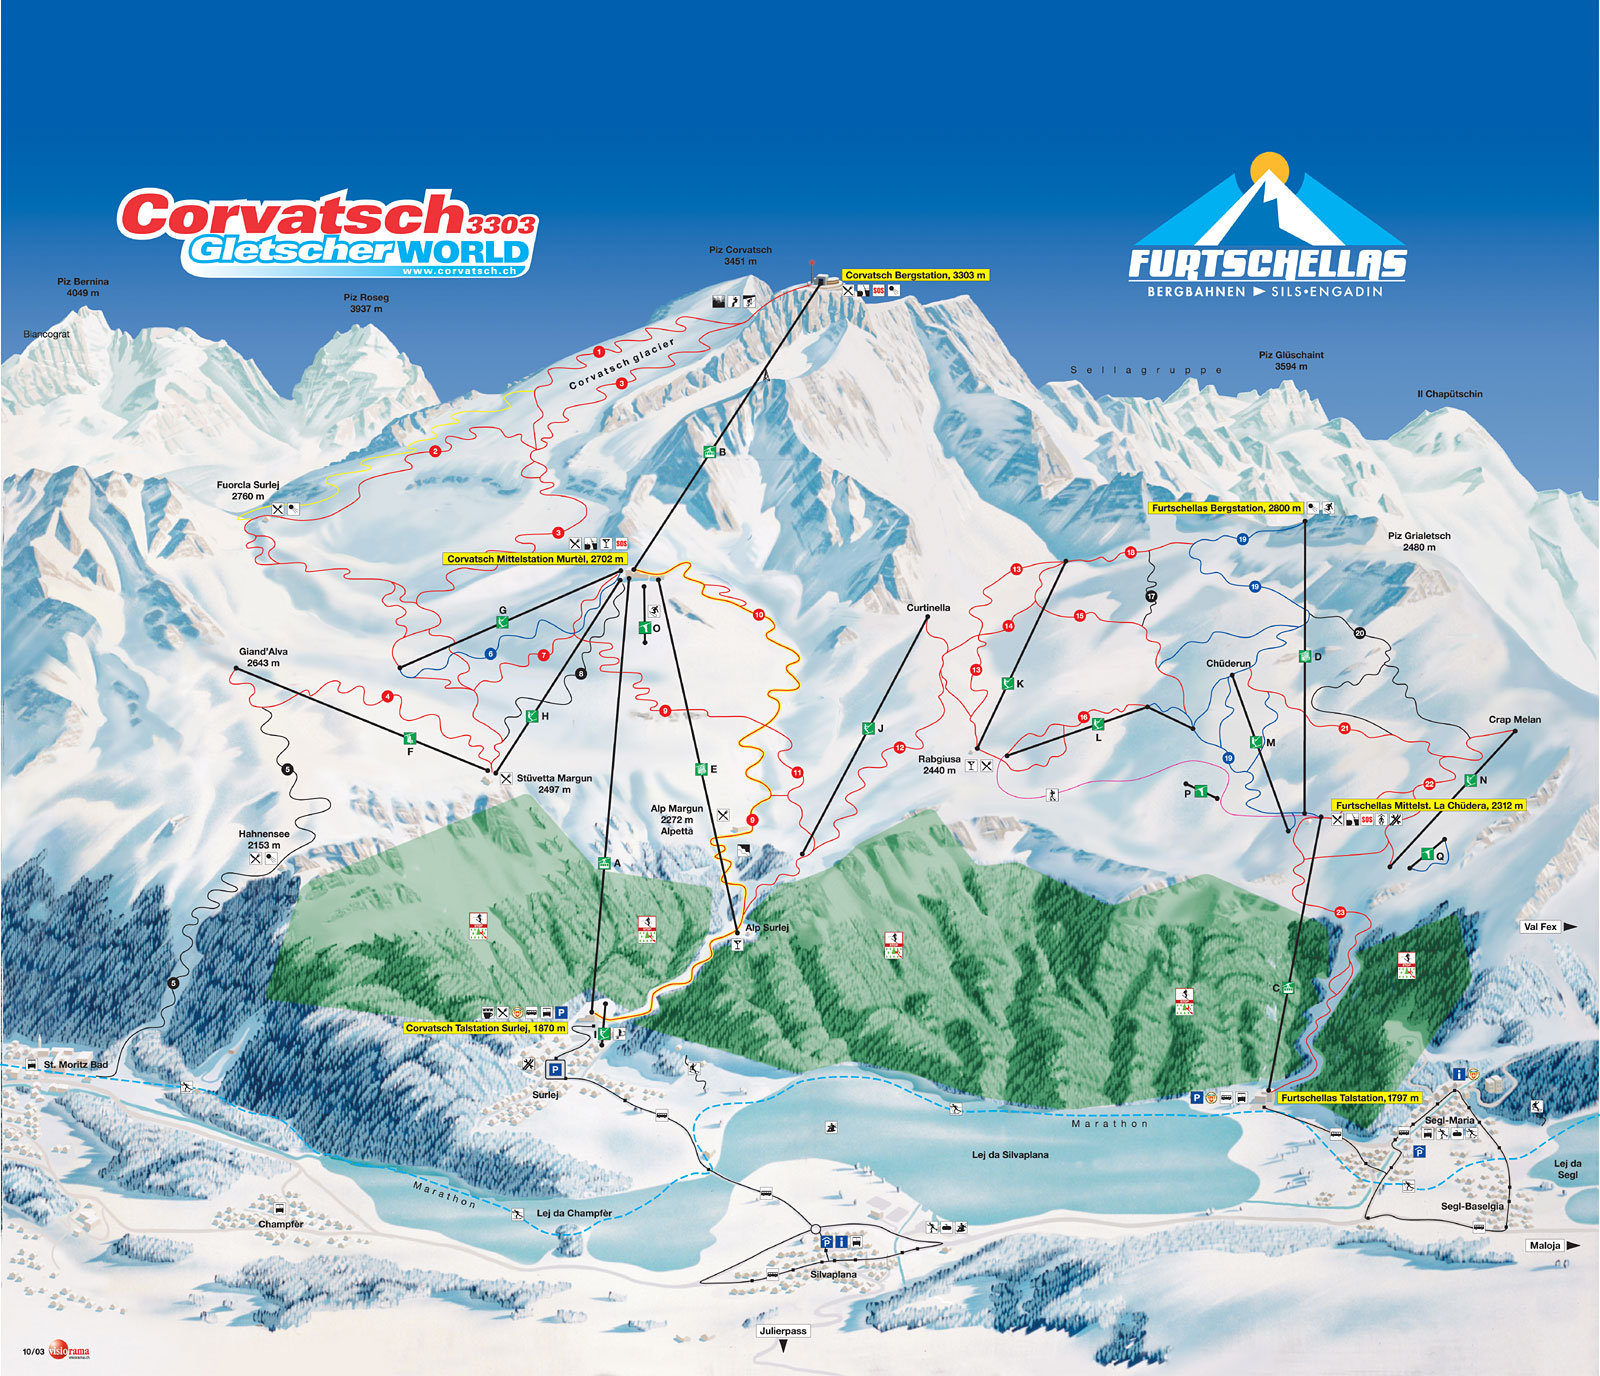 Sils/Engadin Piste / Trail Map